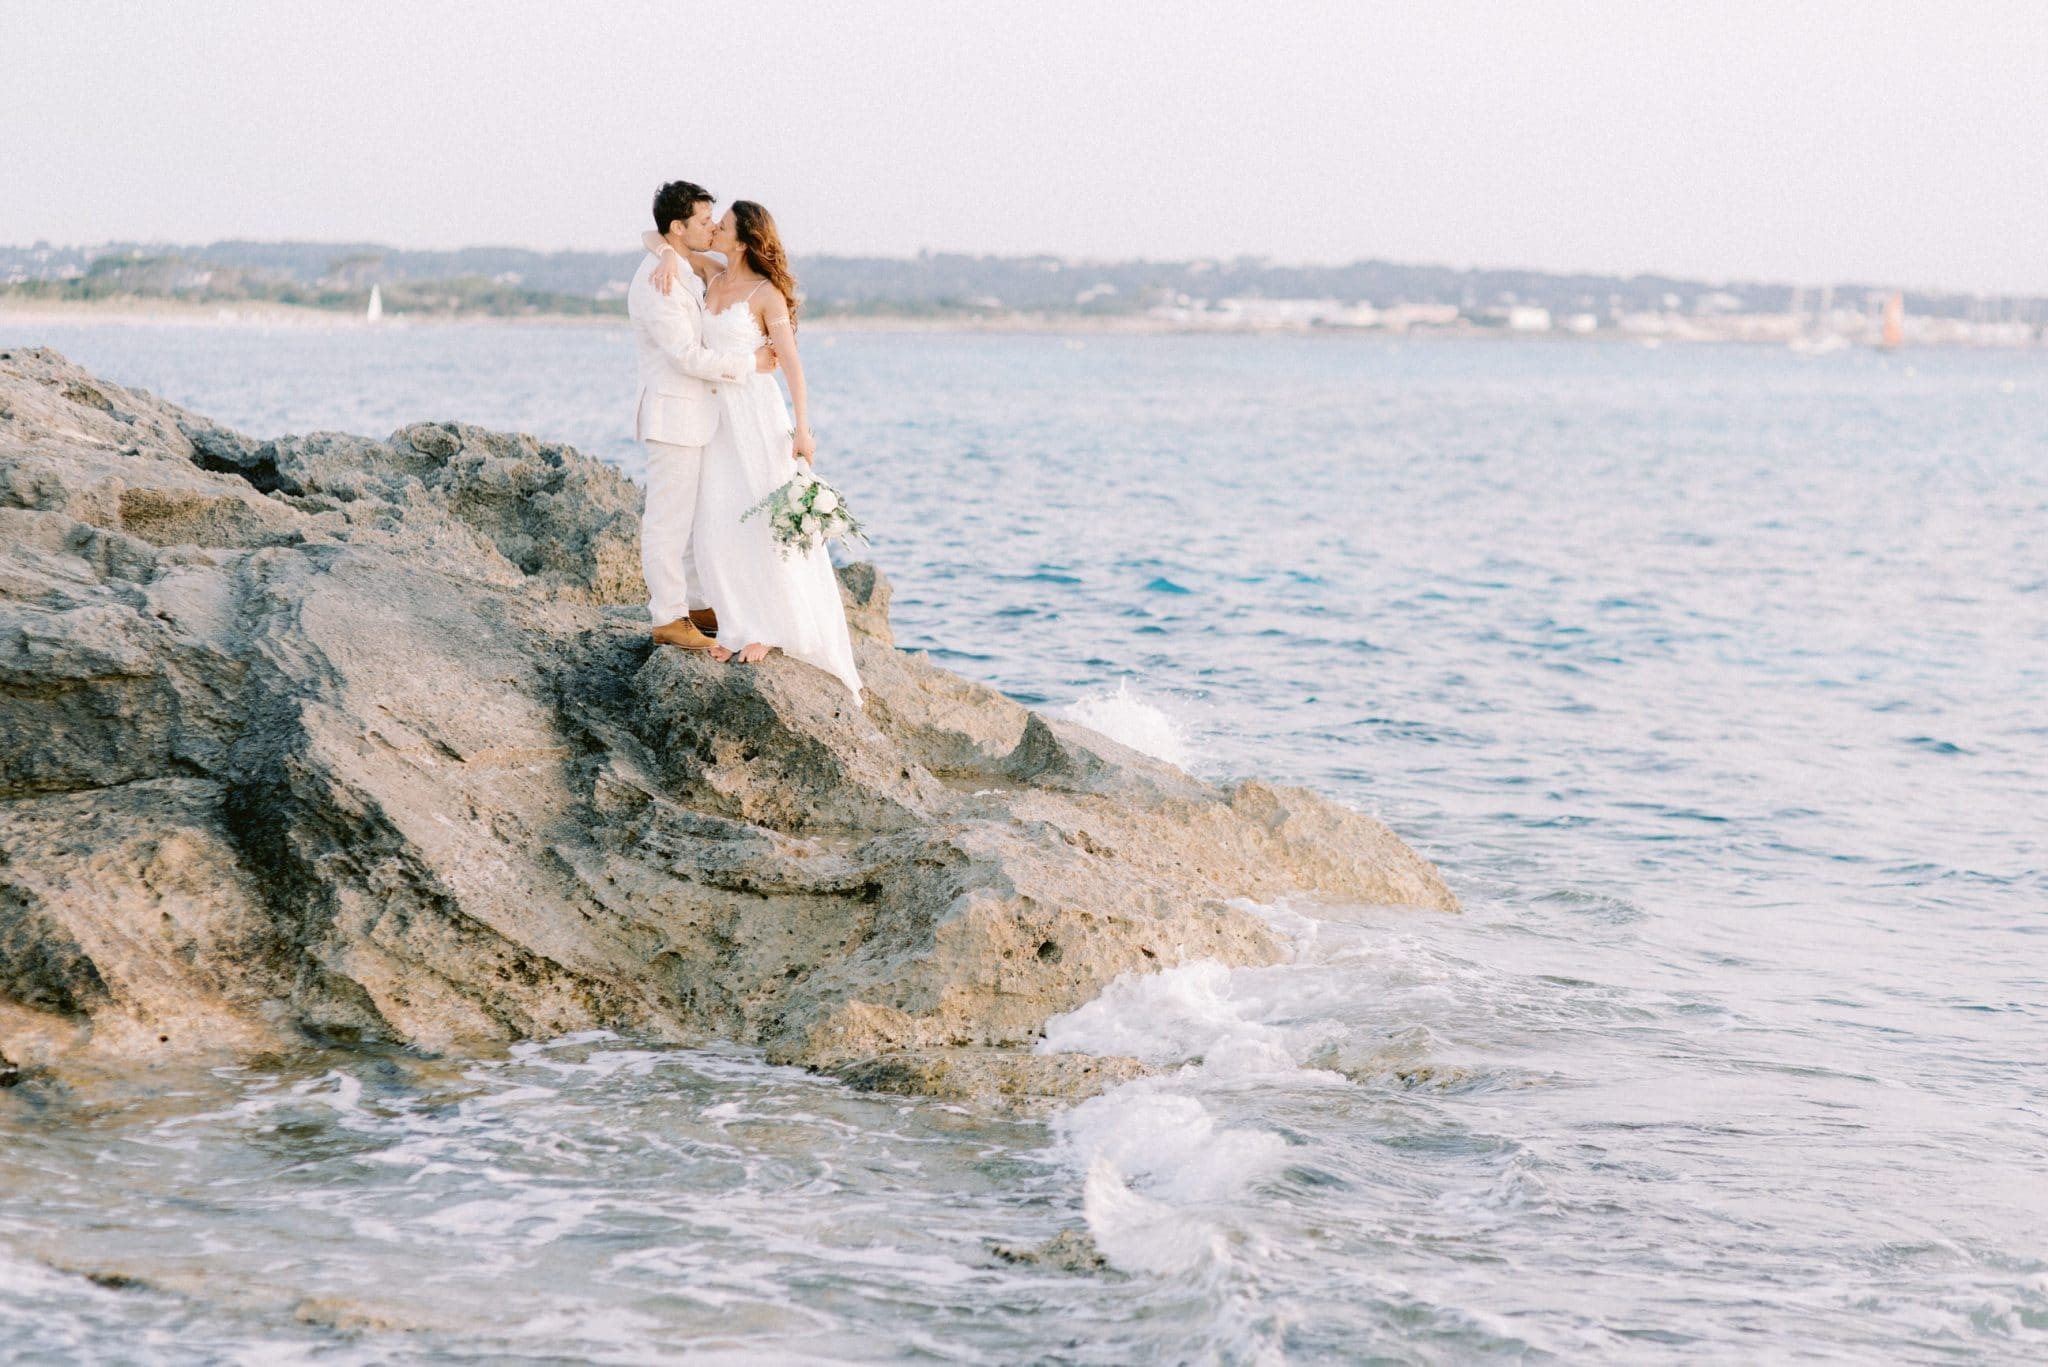 Wedding Photographer Formentera - Youri Claessens Photography